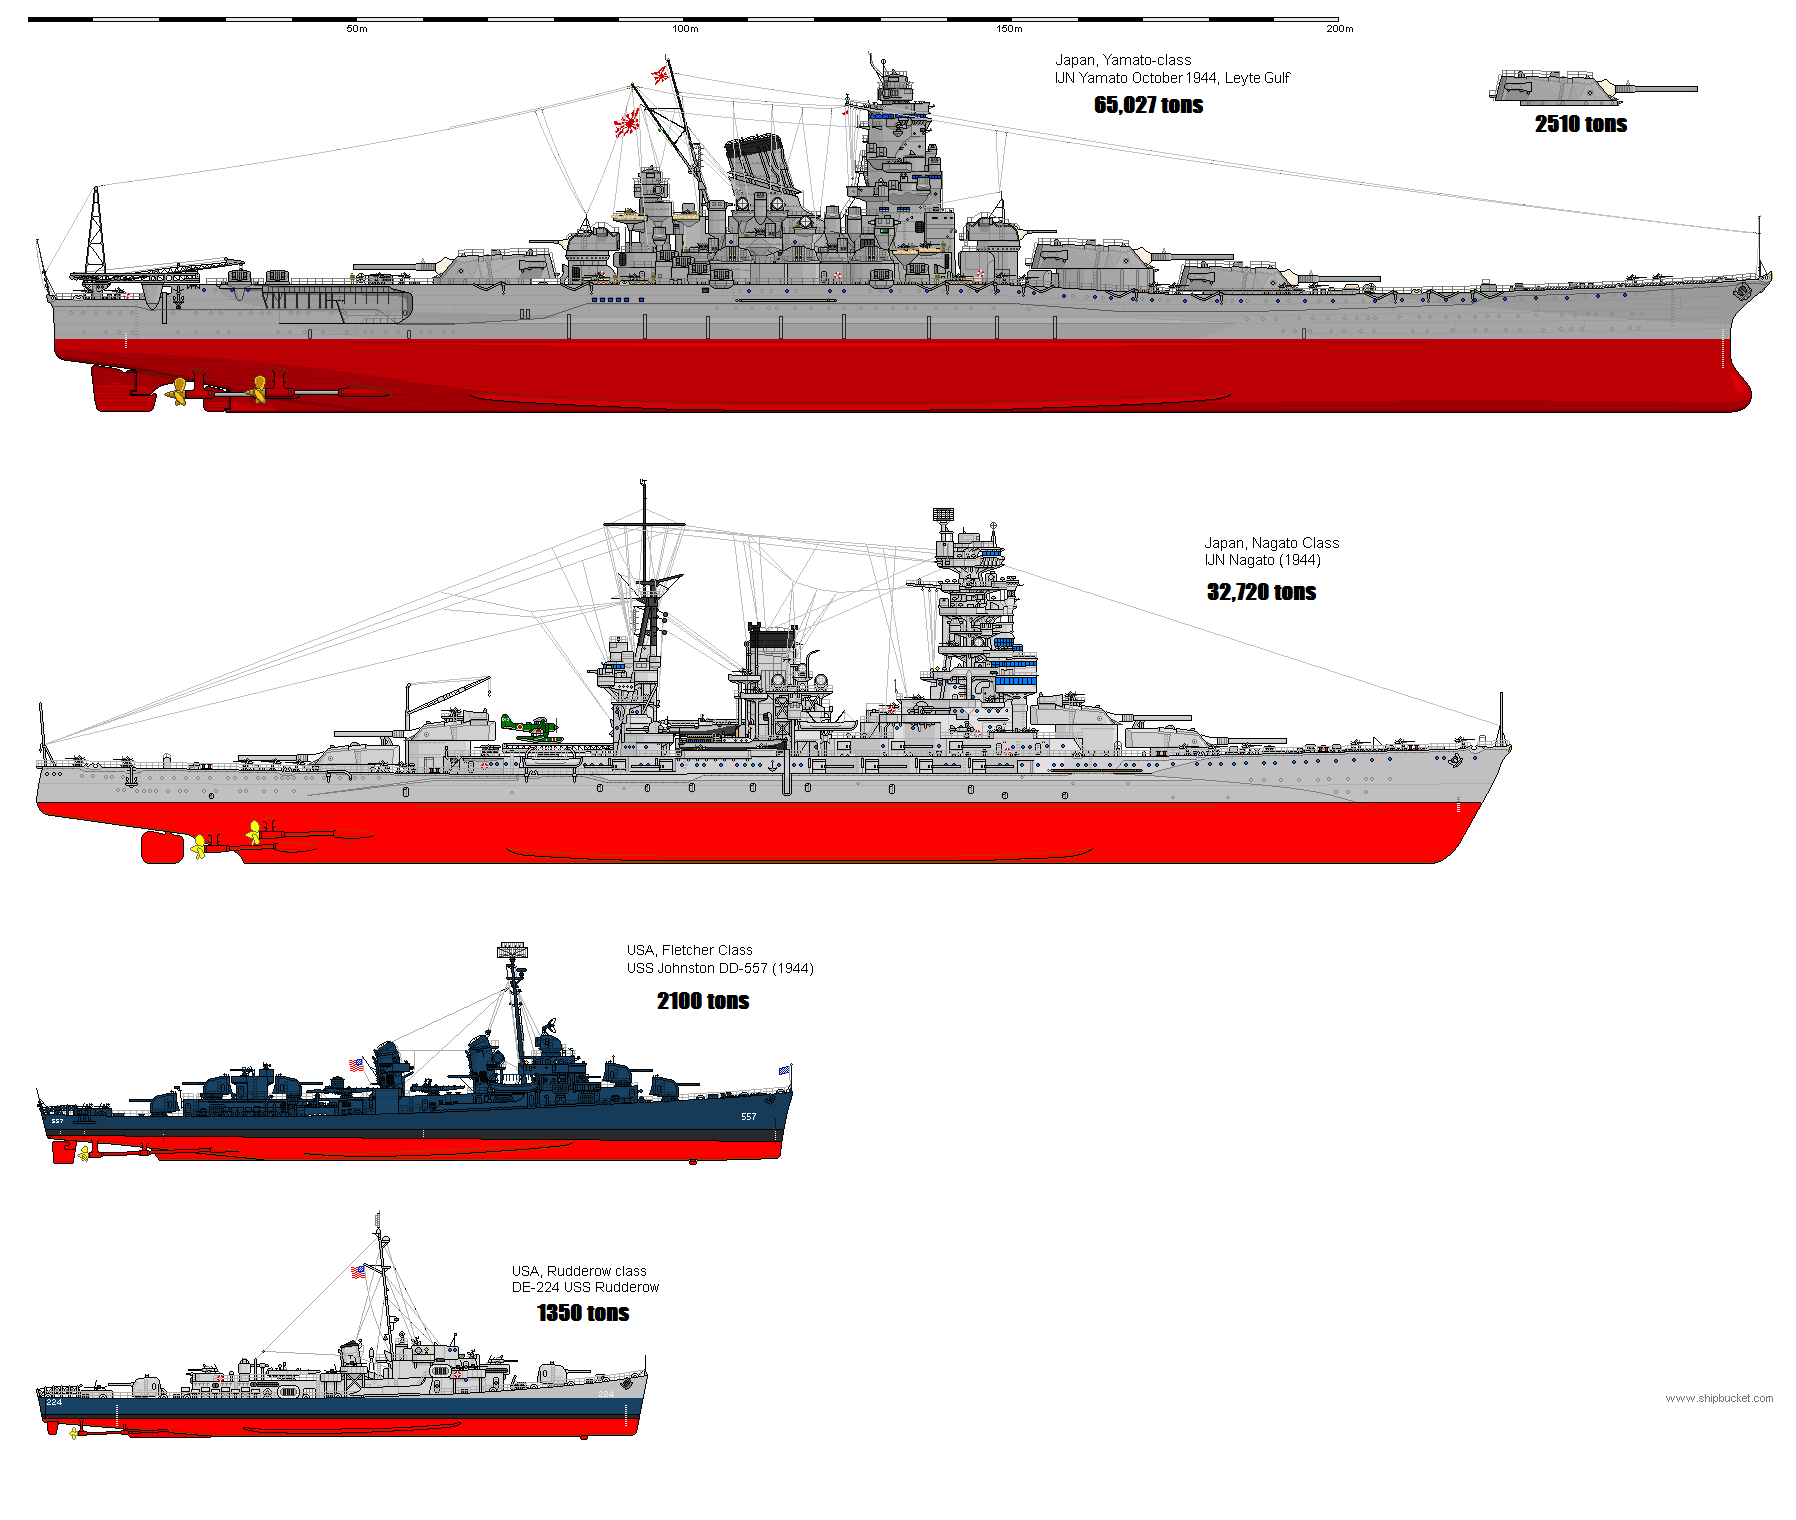 Battle Off Samar Comparison Between The Top Two Heaviest Japanese Units And The Top Two Heaviest American Units Battleship Naval History Warship